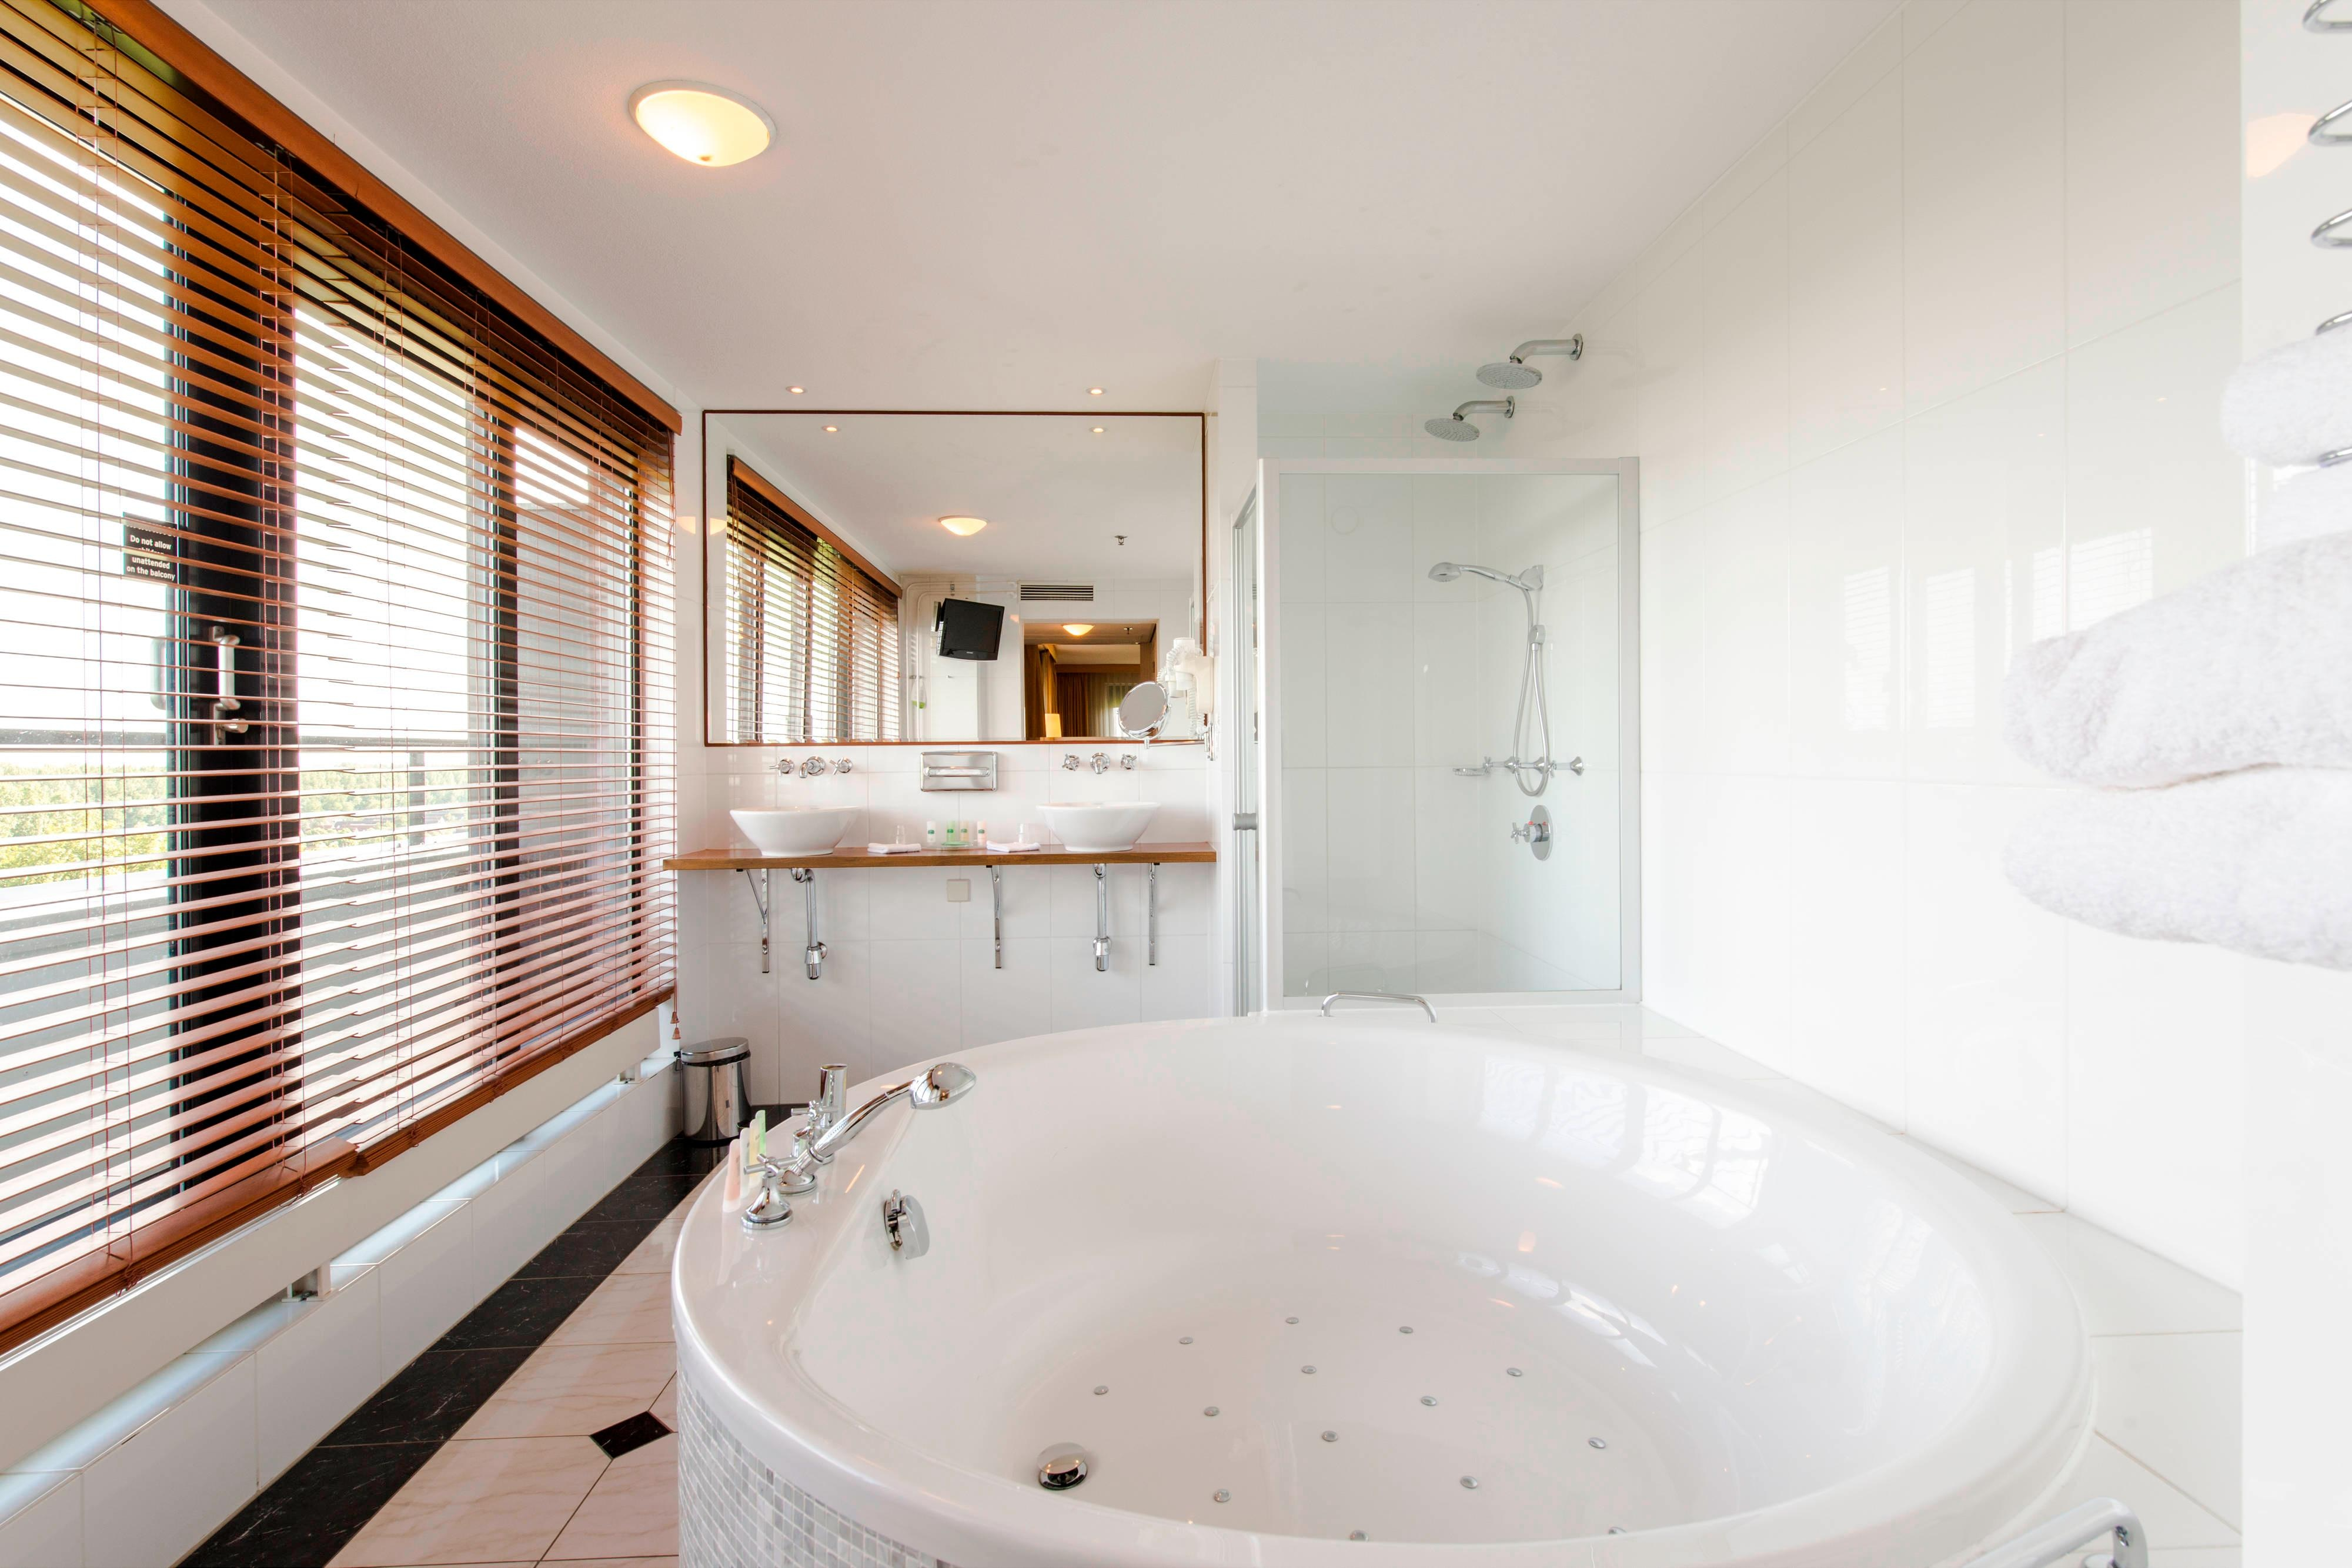 Penthouse Jacuzzi Amsterdam Schiphol hotel